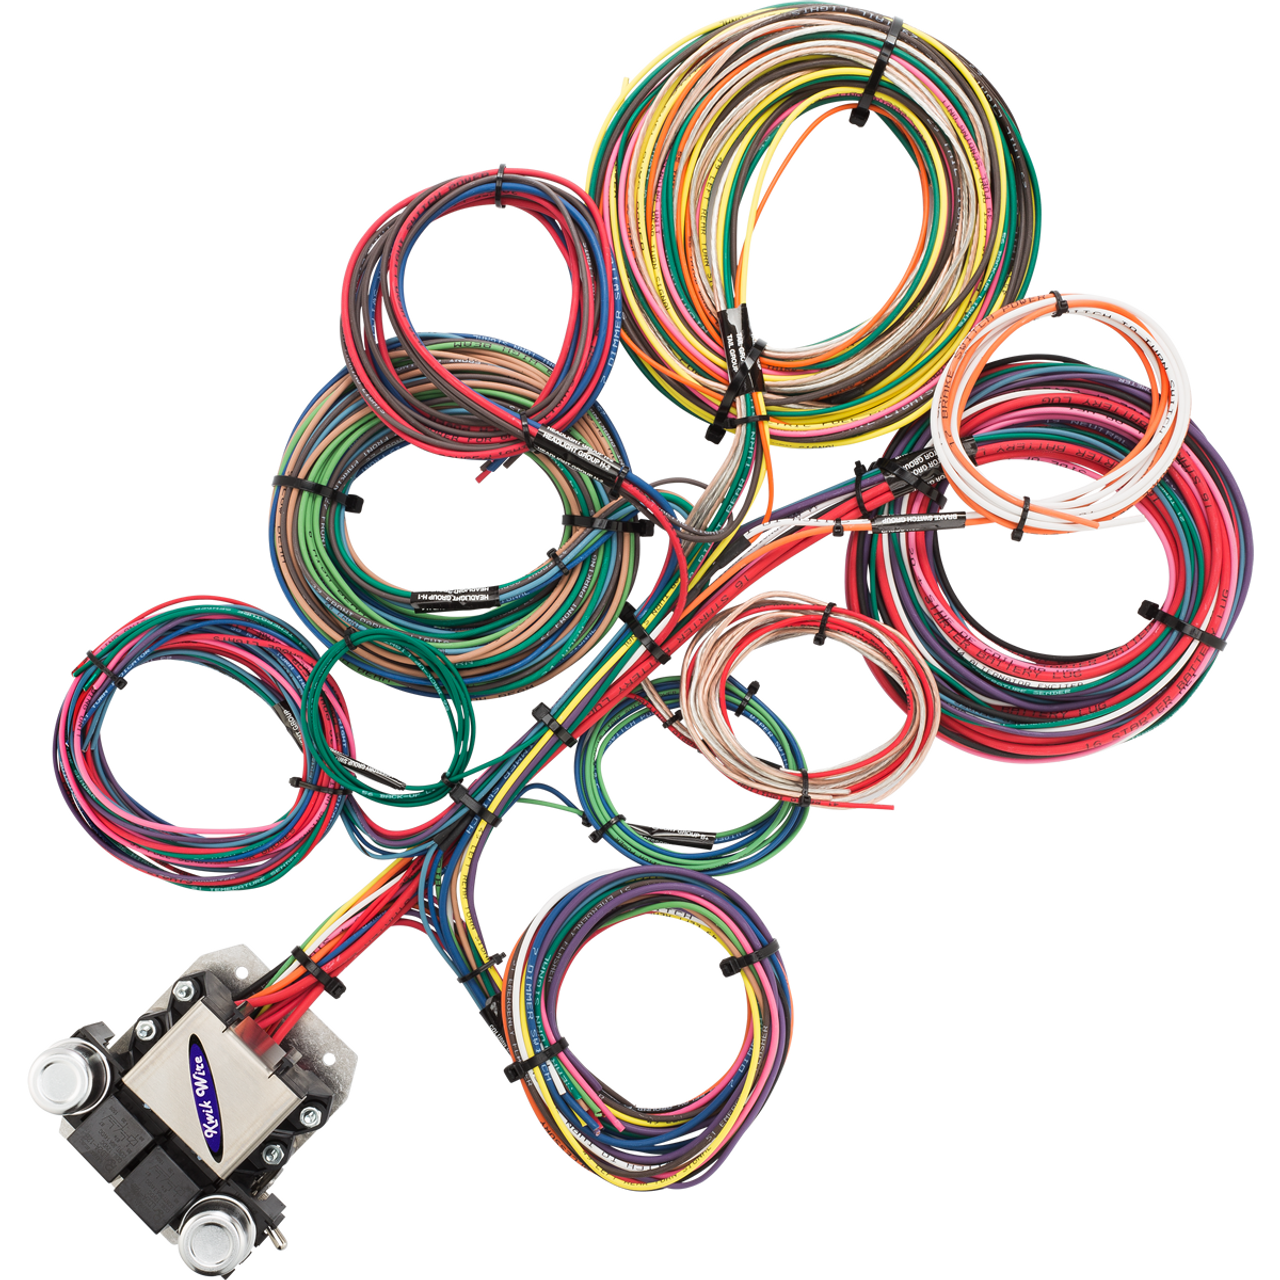 8 circuit wire harness kwikwire com electrify your ride rh kwikwire com Quickwire Storage Quickwire in Push